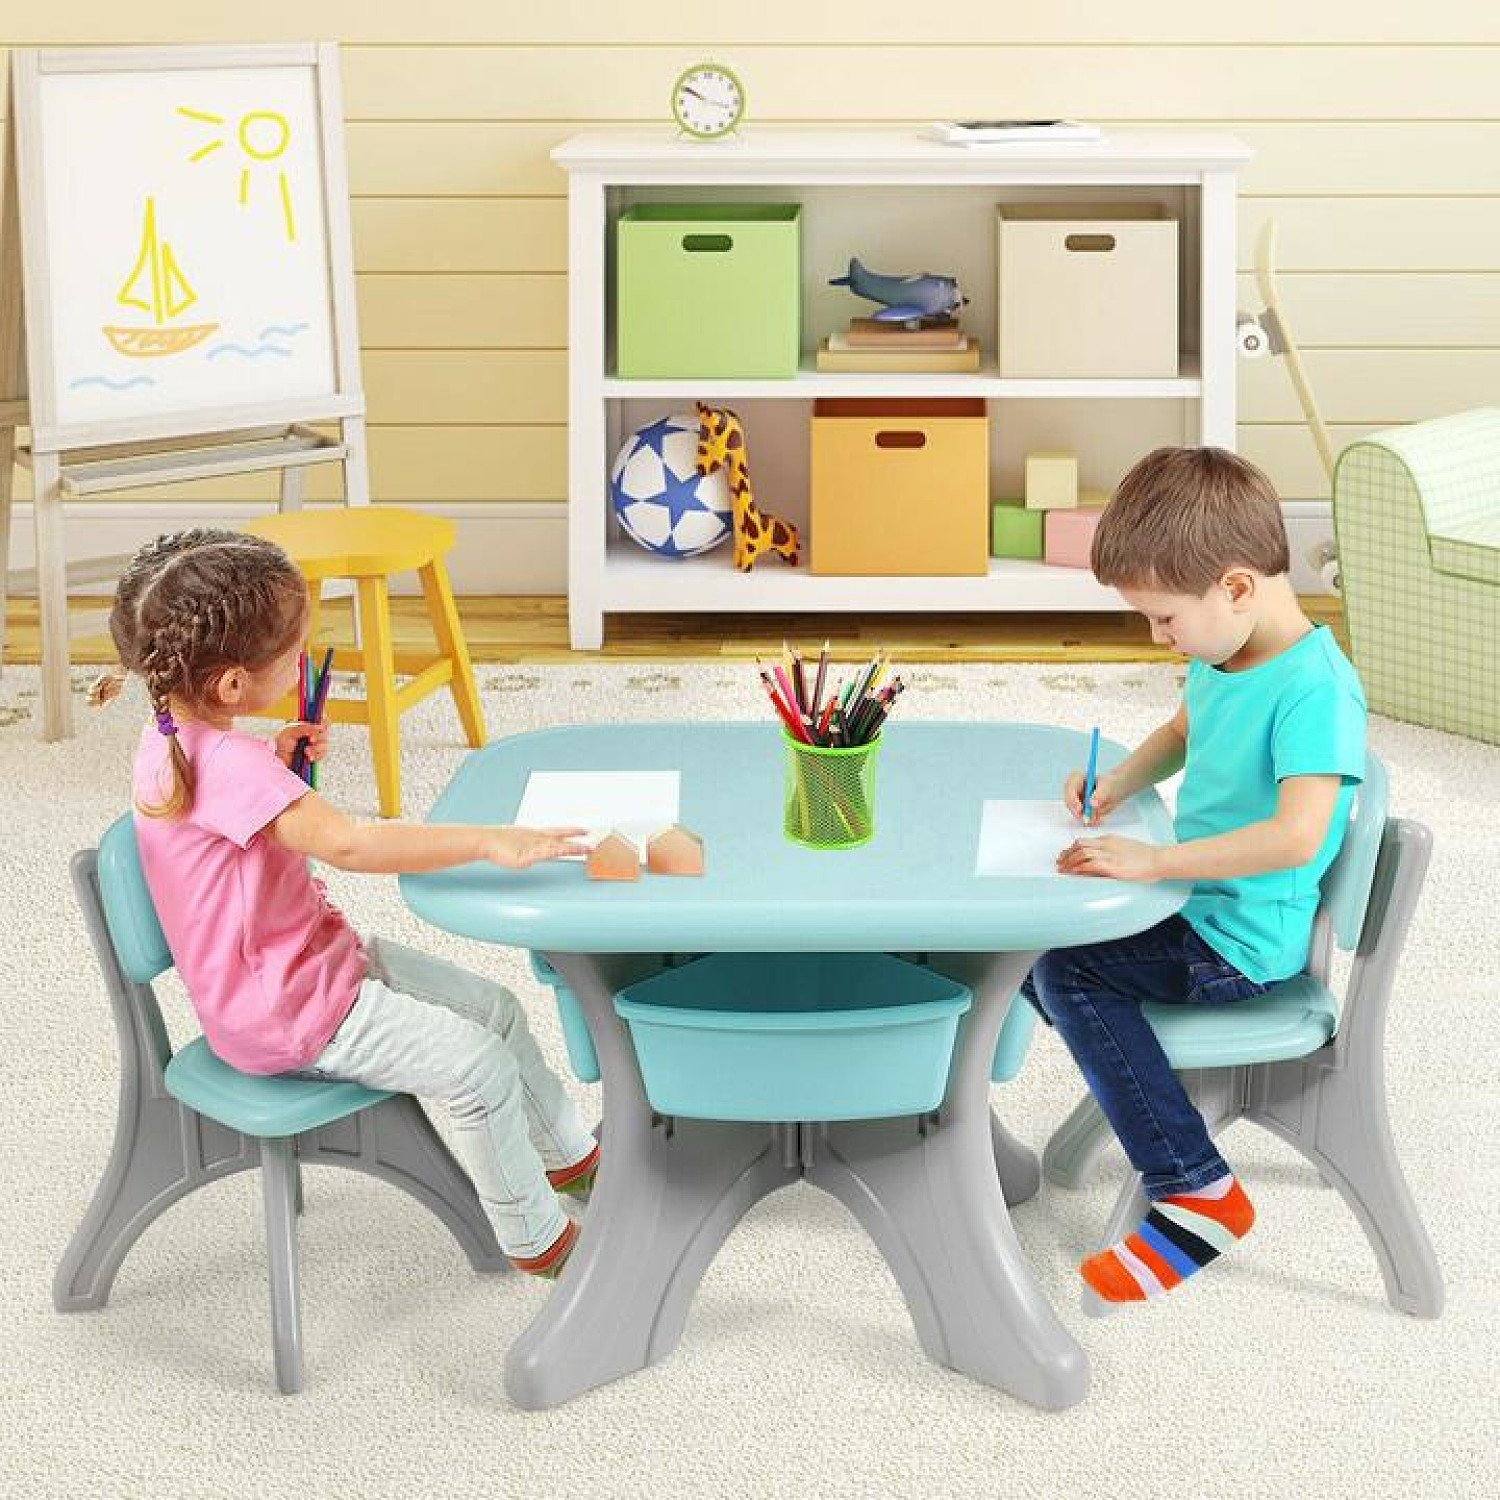 Kid's Table and Chairs Set Children Activity Art Table with Storage Bins Green Free Postage